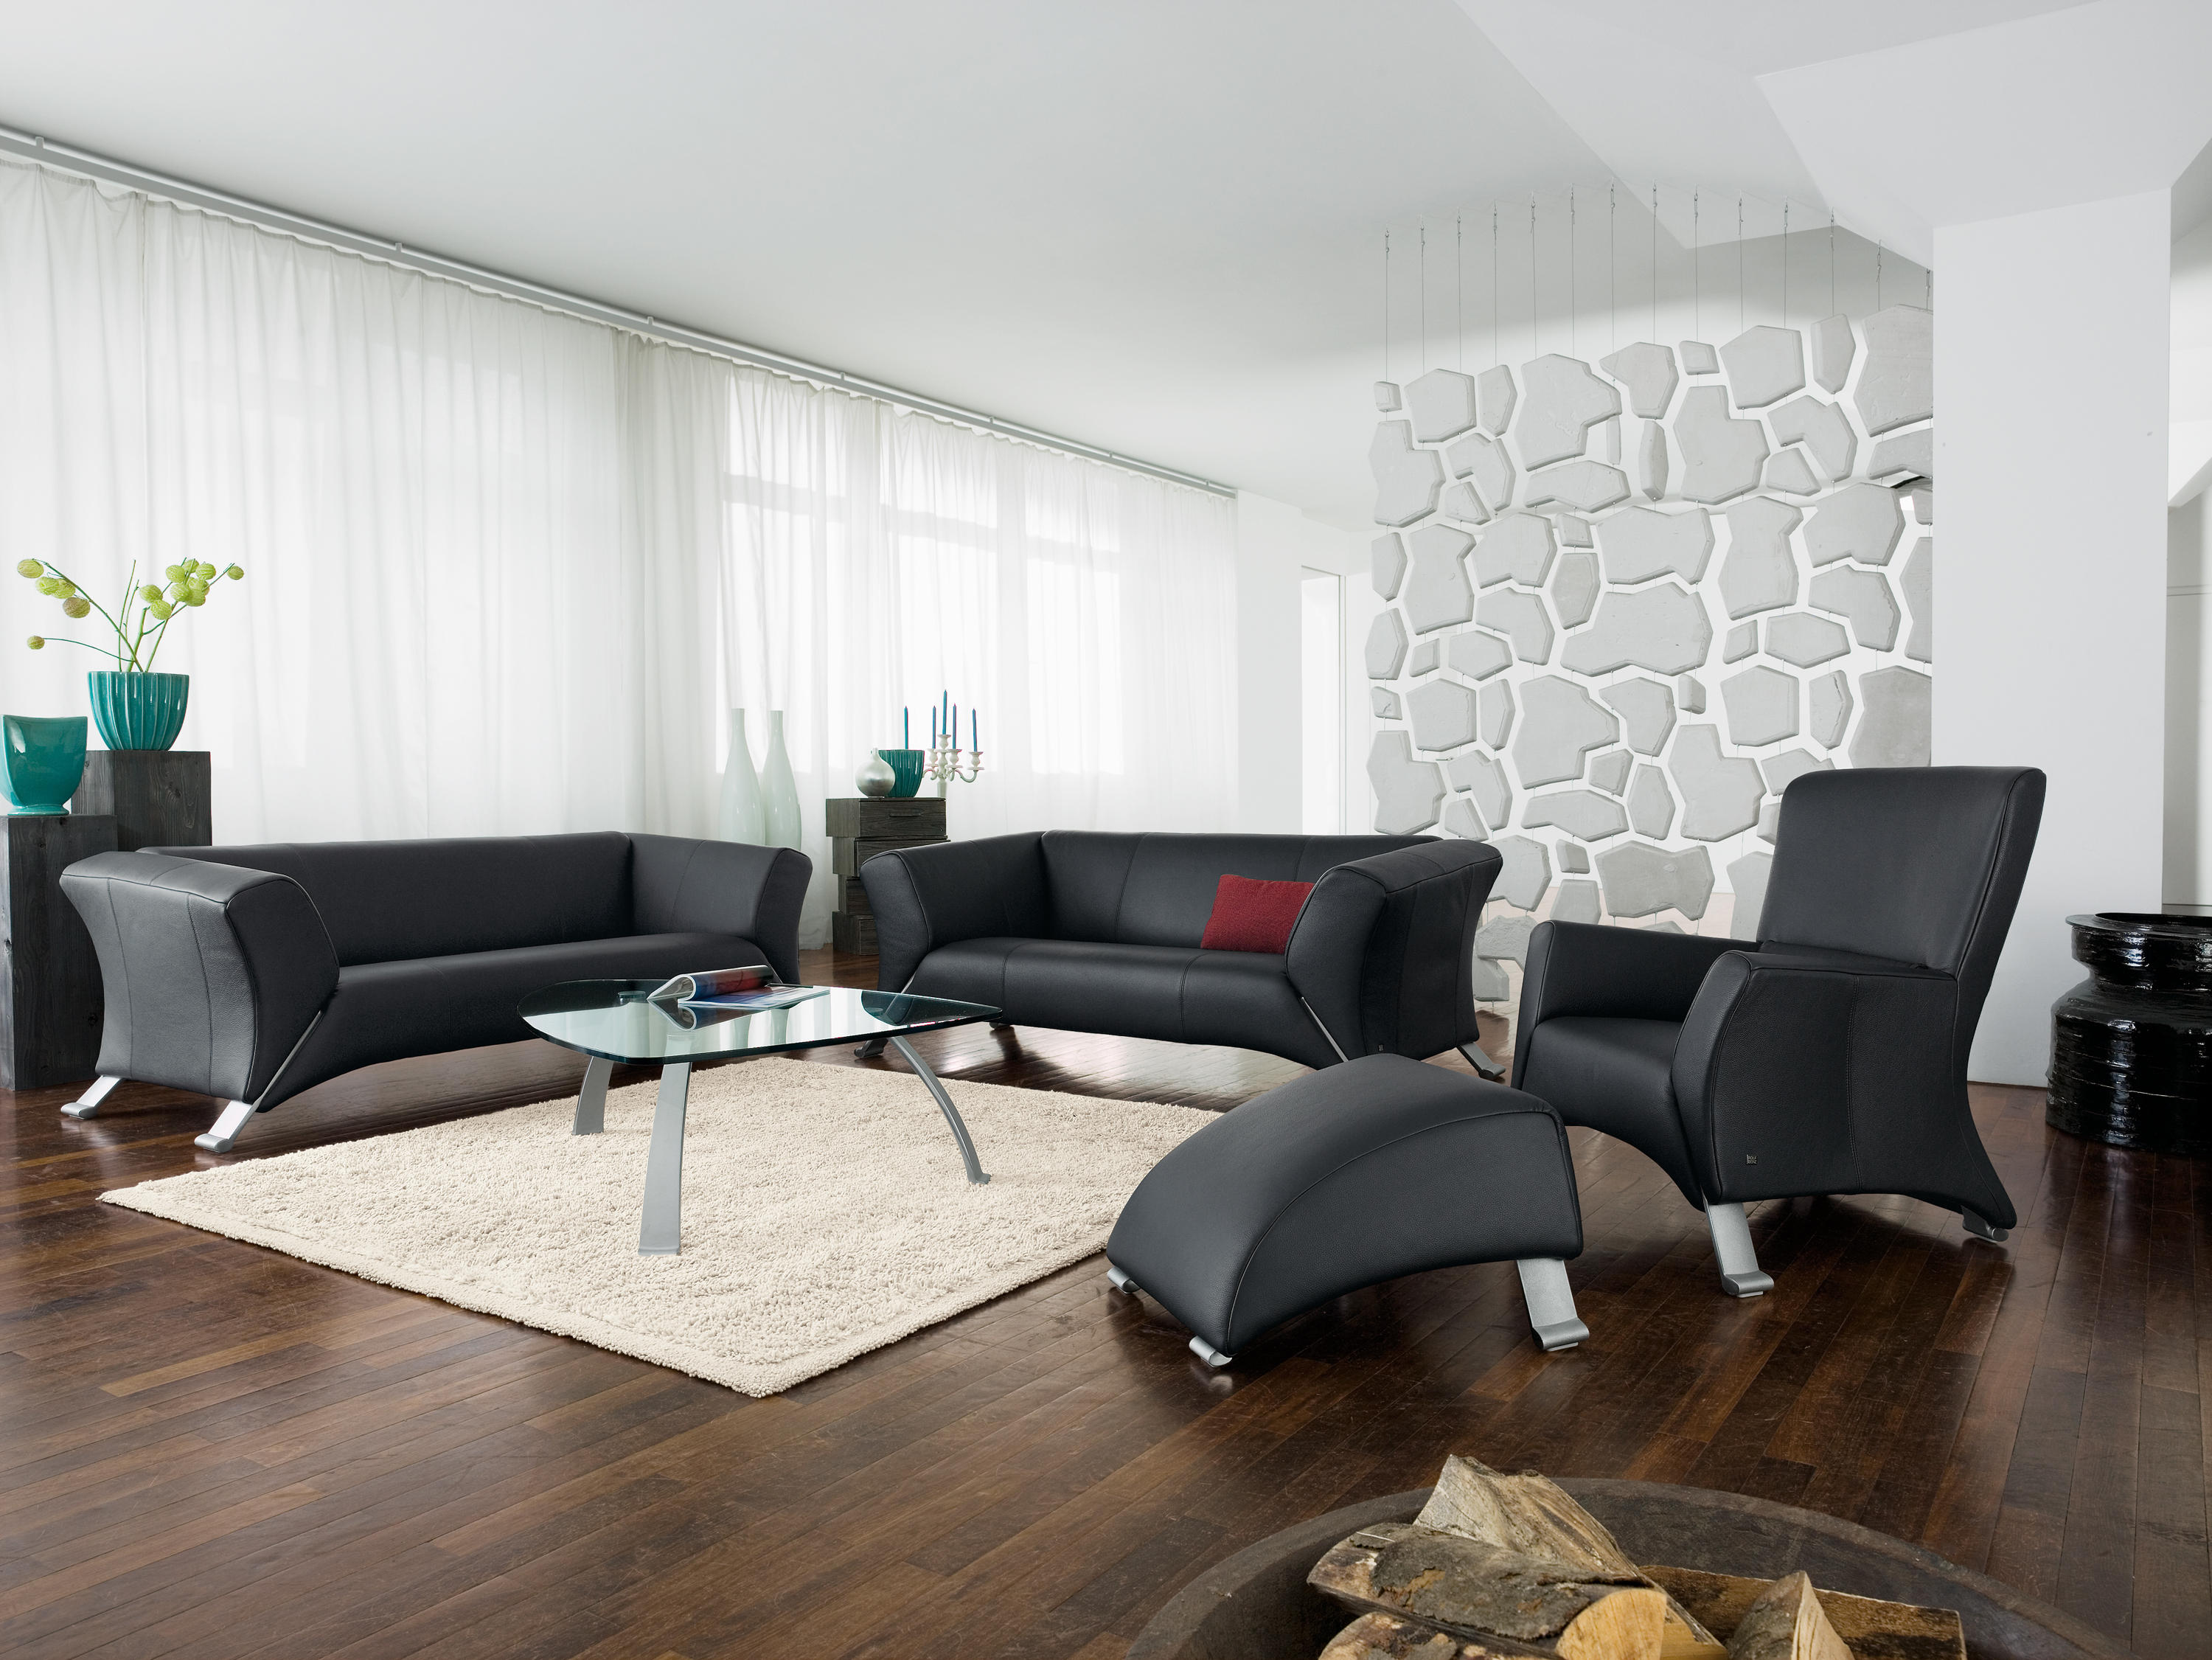 ROLF BENZ 322 - Lounge sofas from Rolf Benz | Architonic